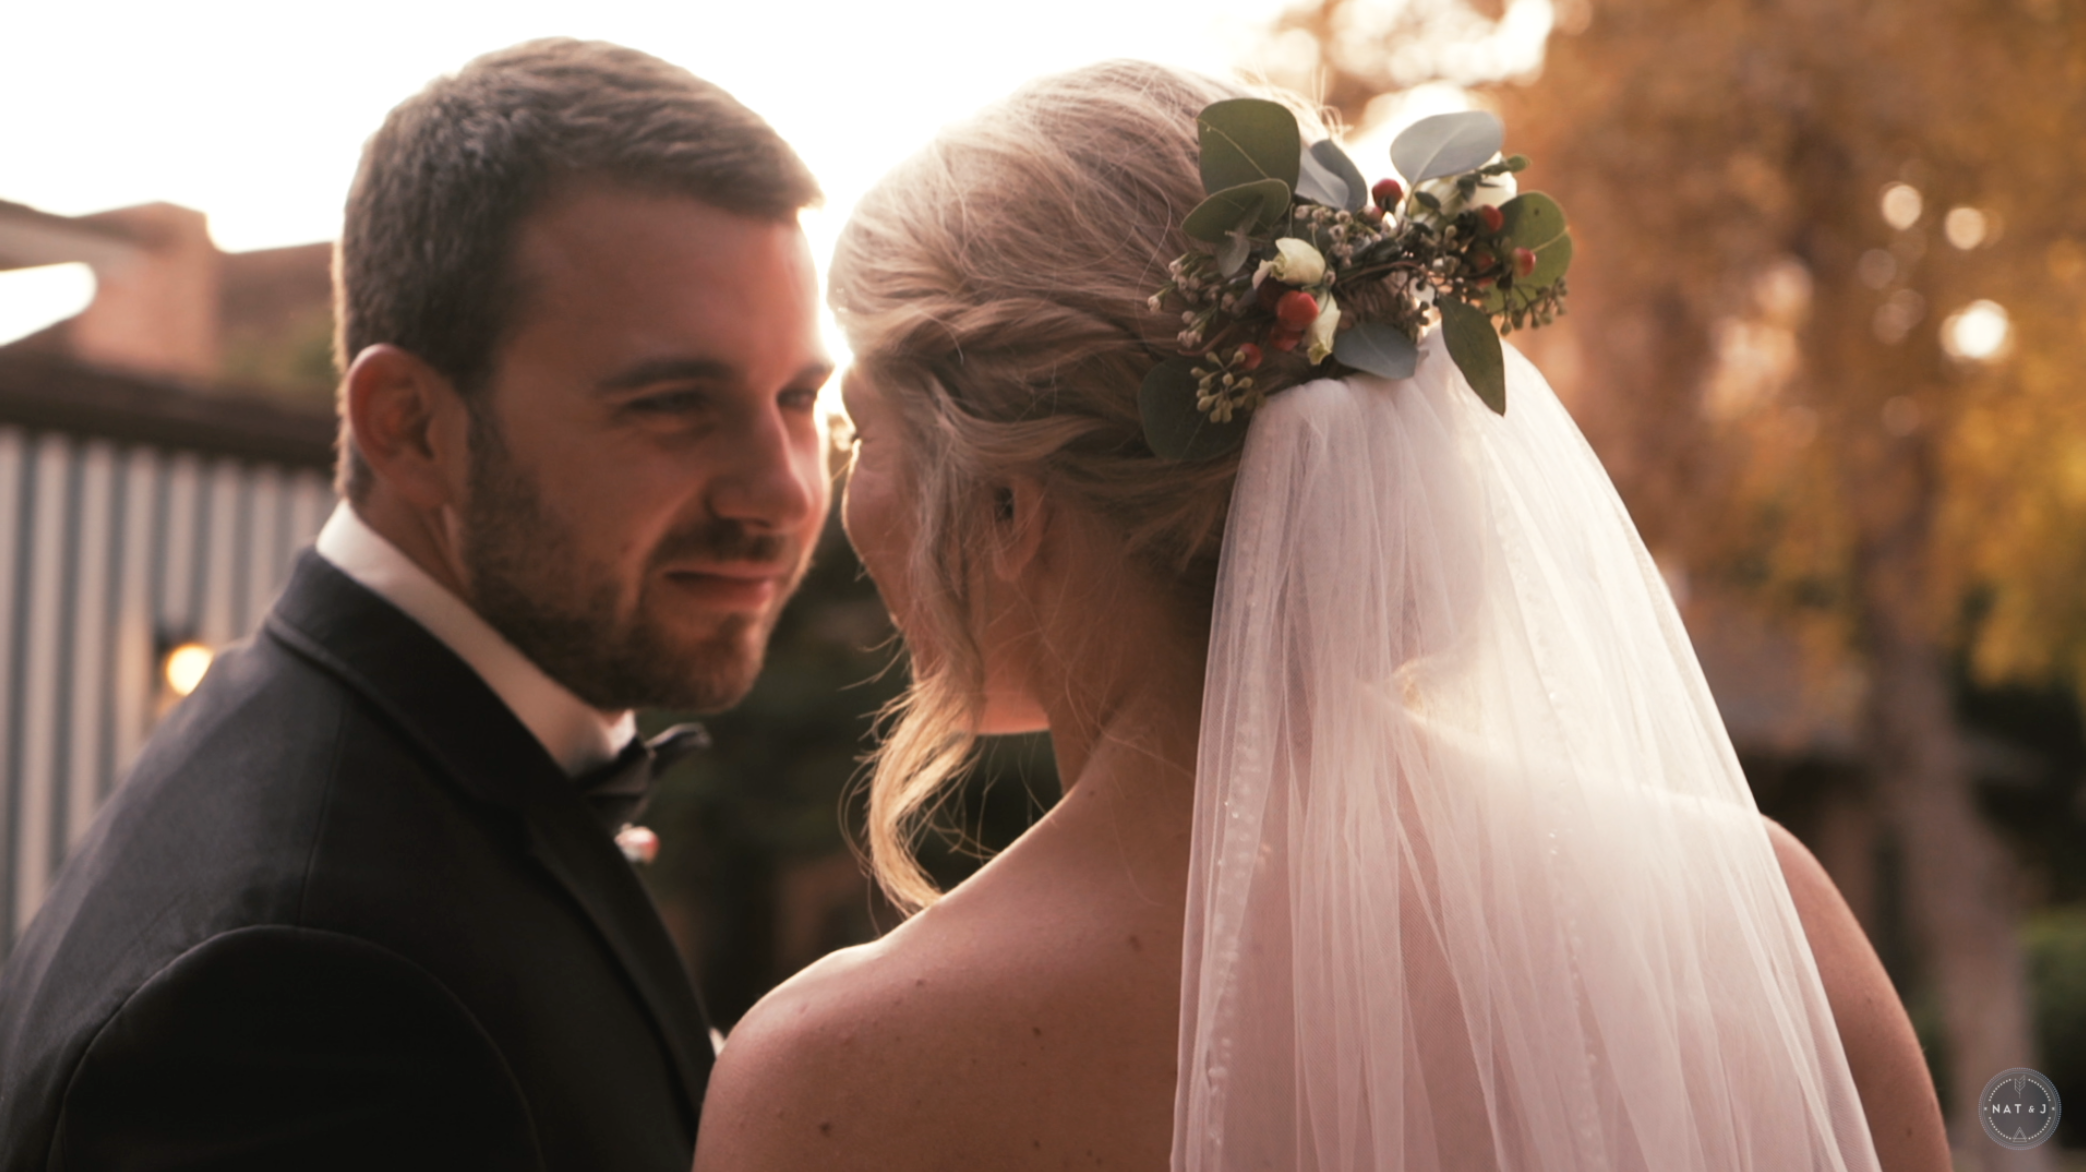 sammy & josh - Beautiful video with one of our favorite couples' New Years wedding